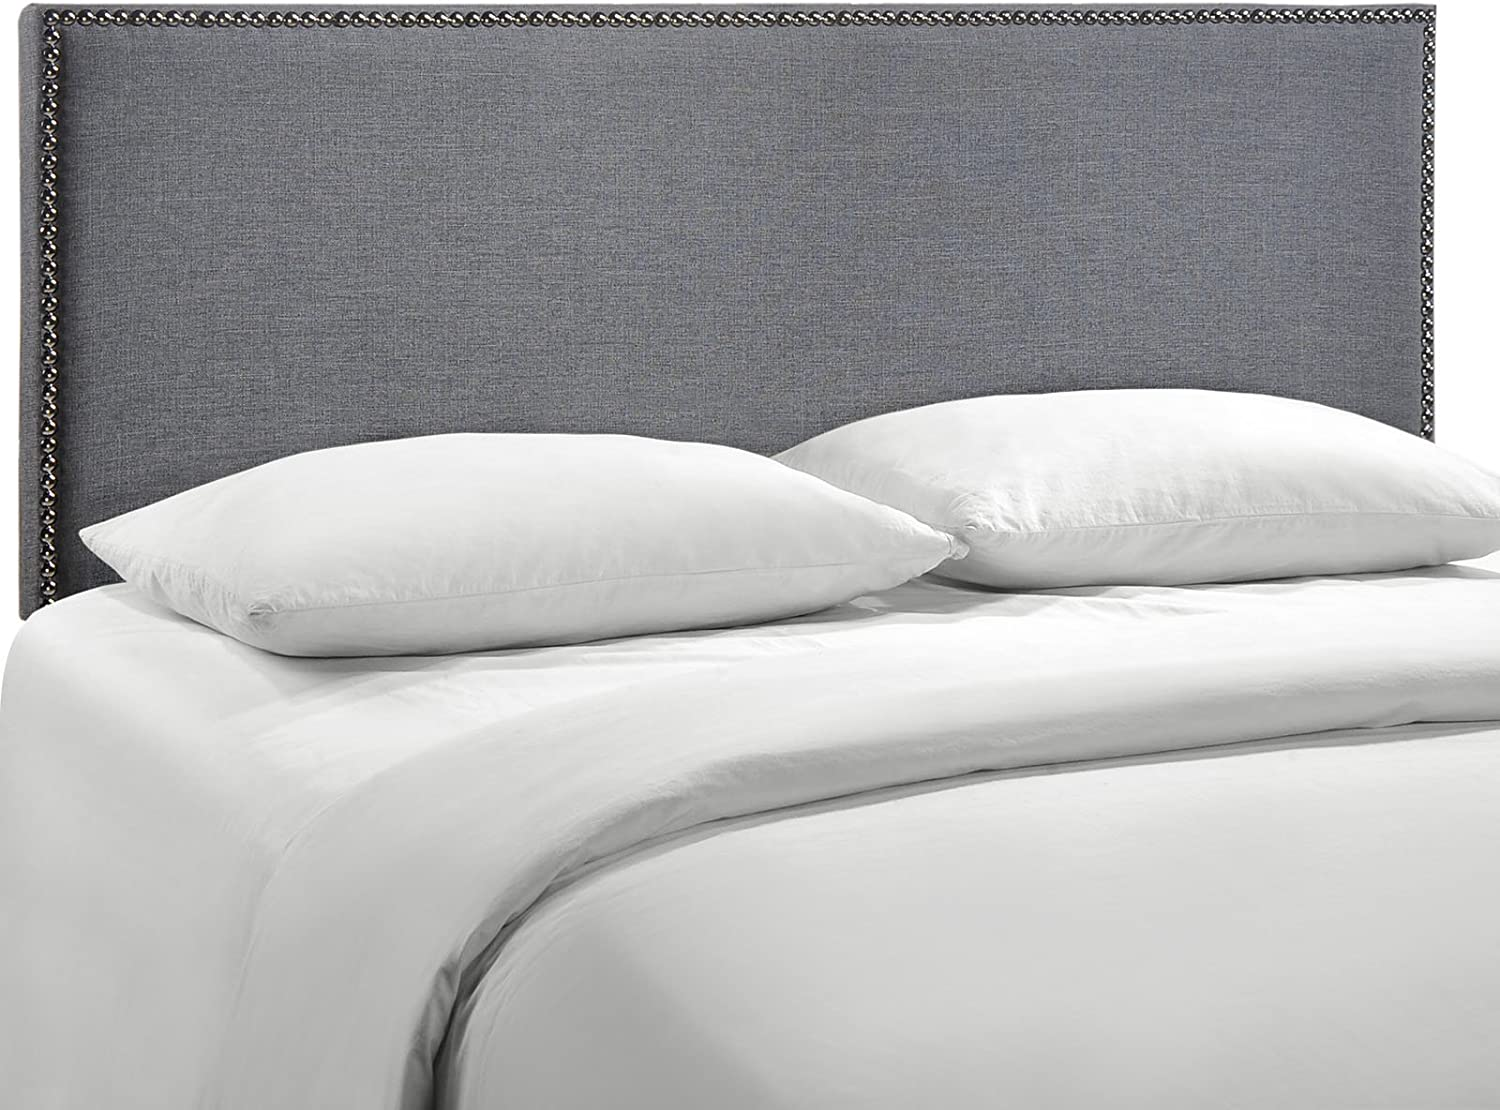 Modway Region Linen Fabric Upholstered Queen Headboard in Smoke with Nailhead Trim